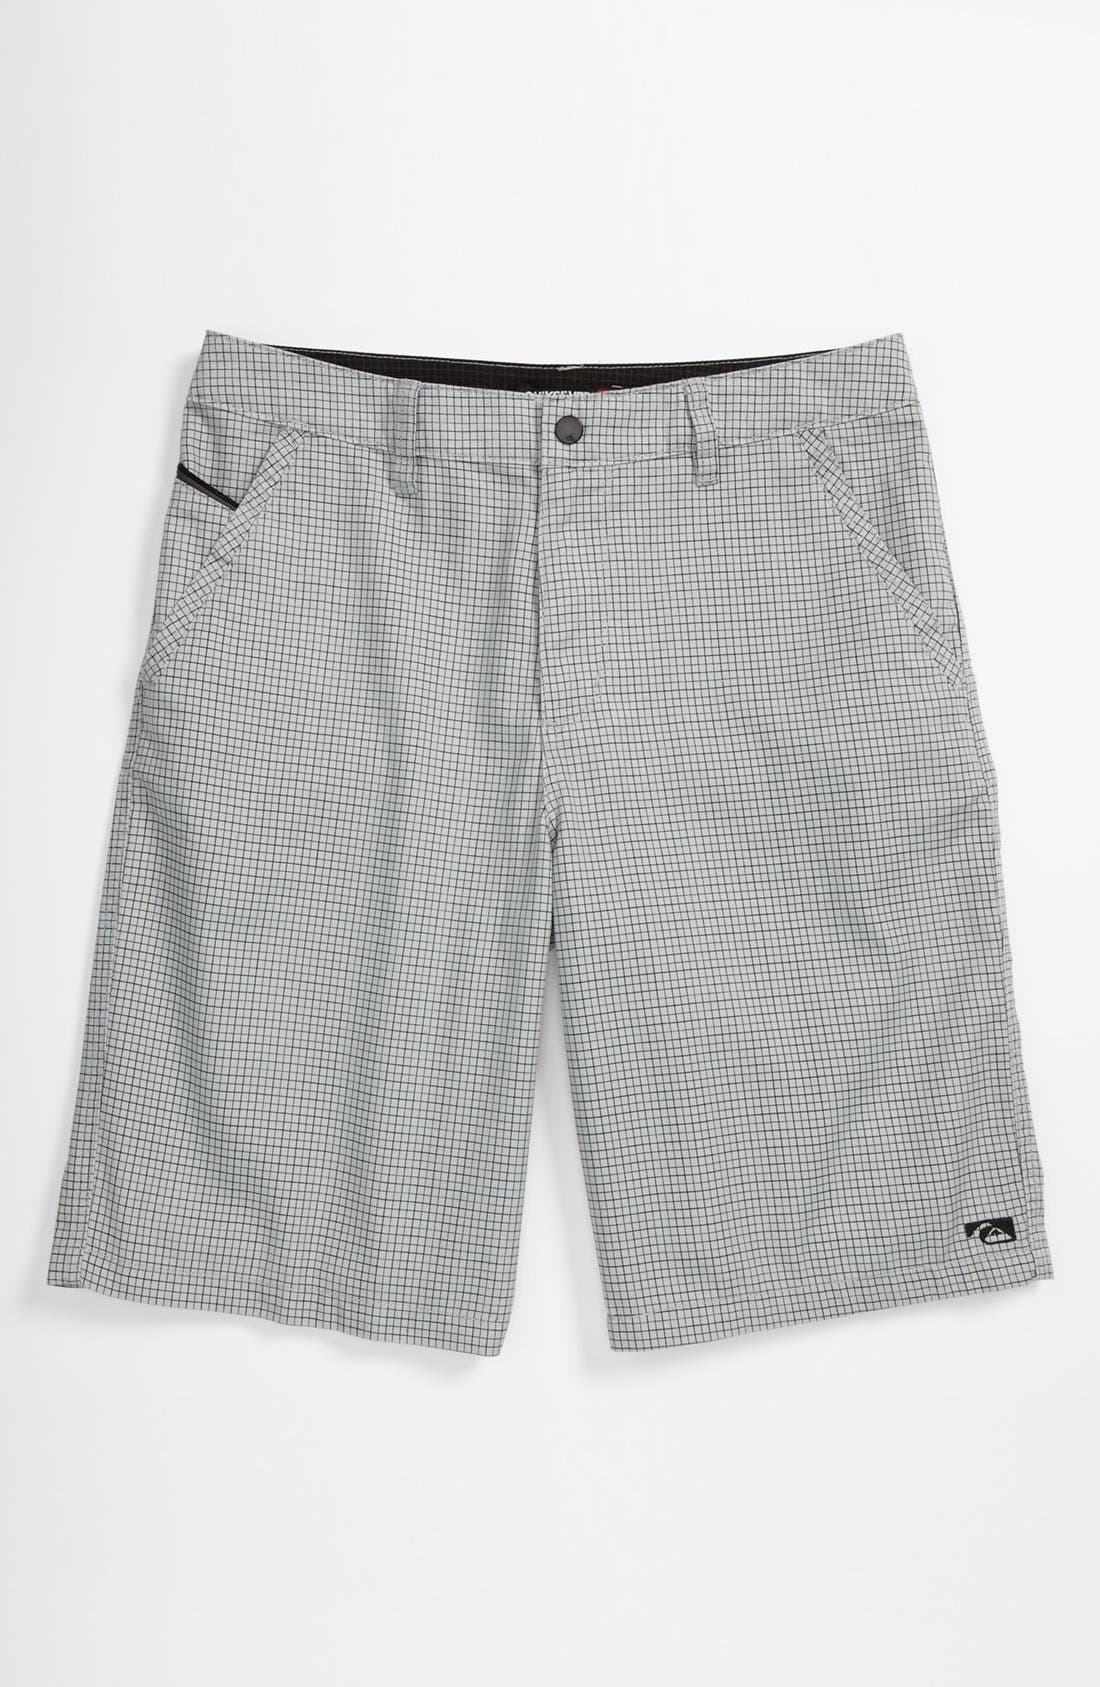 Alternate Image 1 Selected - Quiksilver 'All In' Shorts (Little Boys)